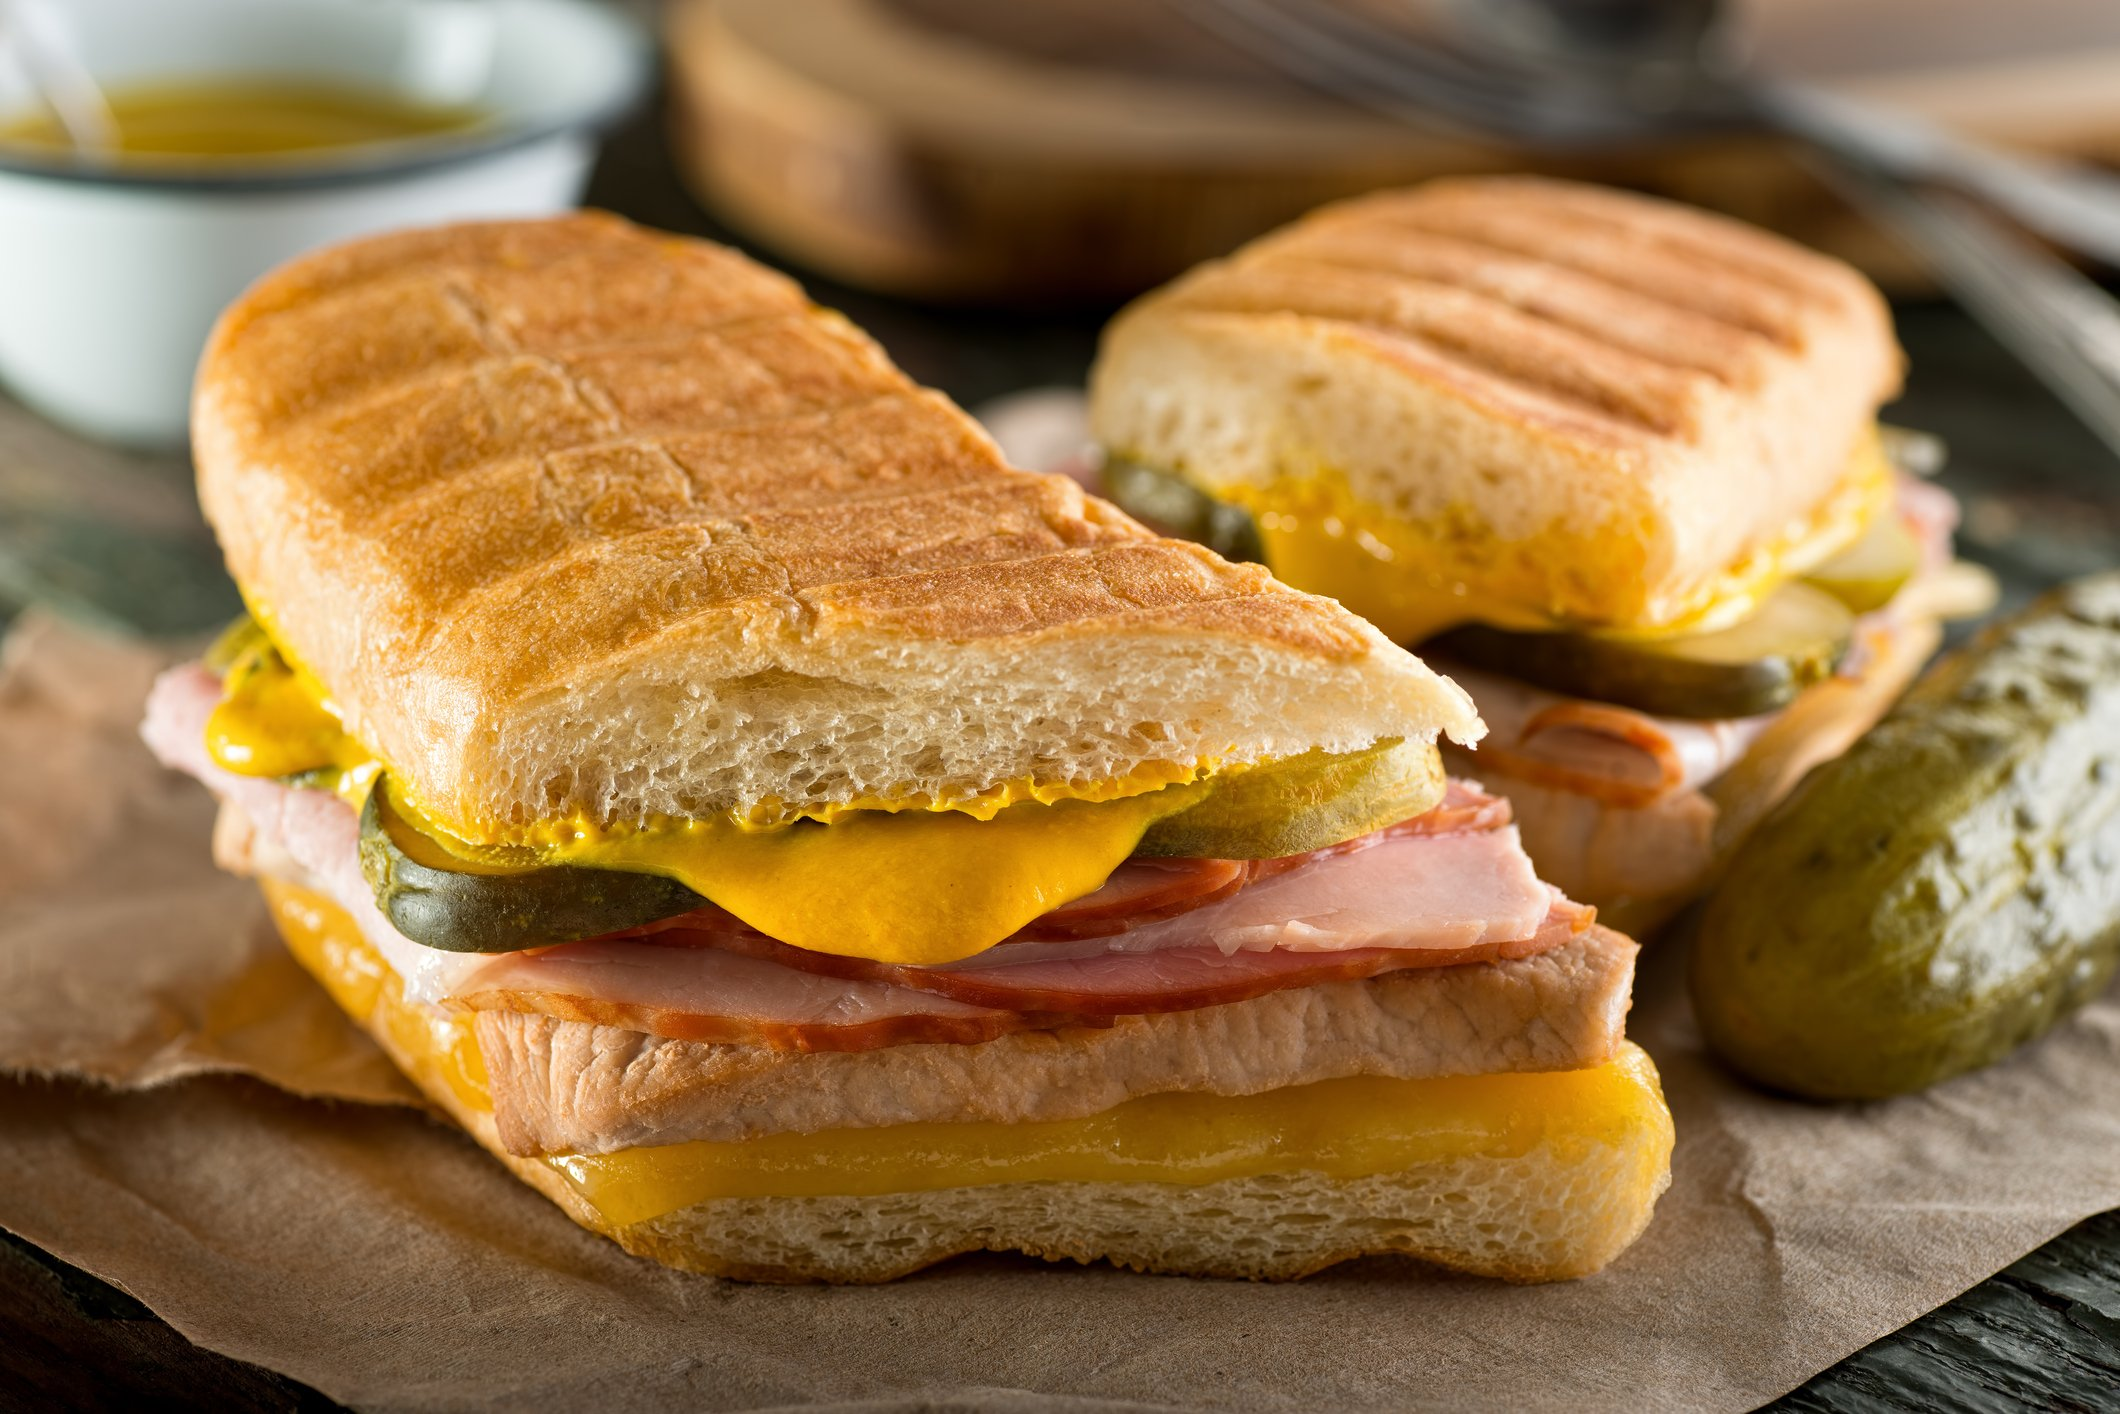 An authentic cuban sandwich on pressed medianoche bread with pork, ham, cheese, pickle, and mustard.